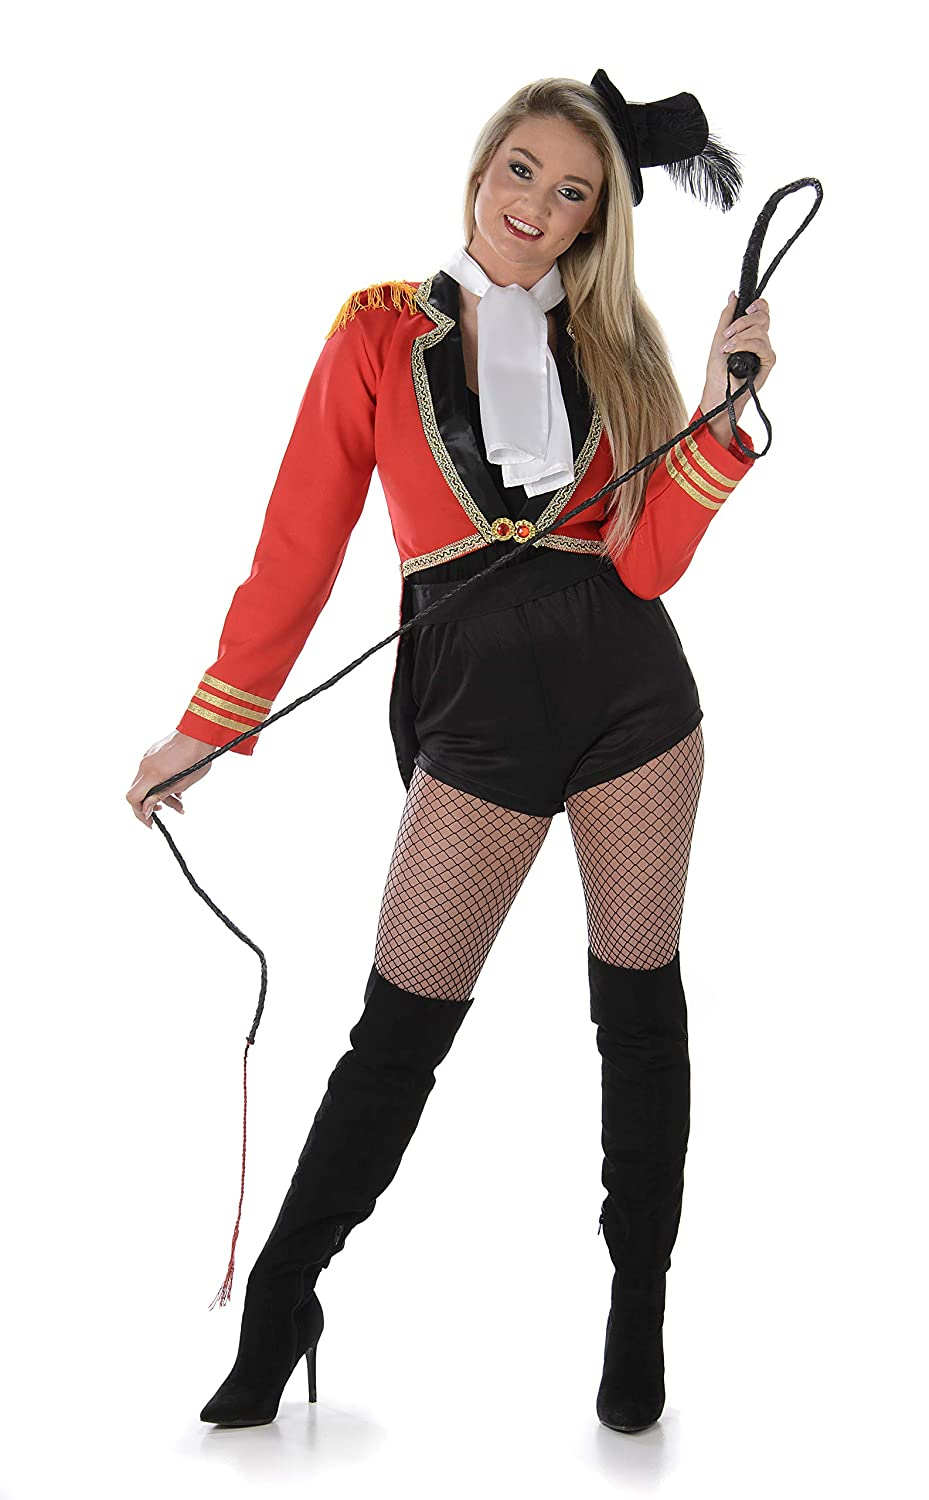 e55599f6f2a93 Amazon.com: Sexy Ringmaster Costume - Halloween Womens Vintage Carnival  Cropped Red Outfit: Clothing